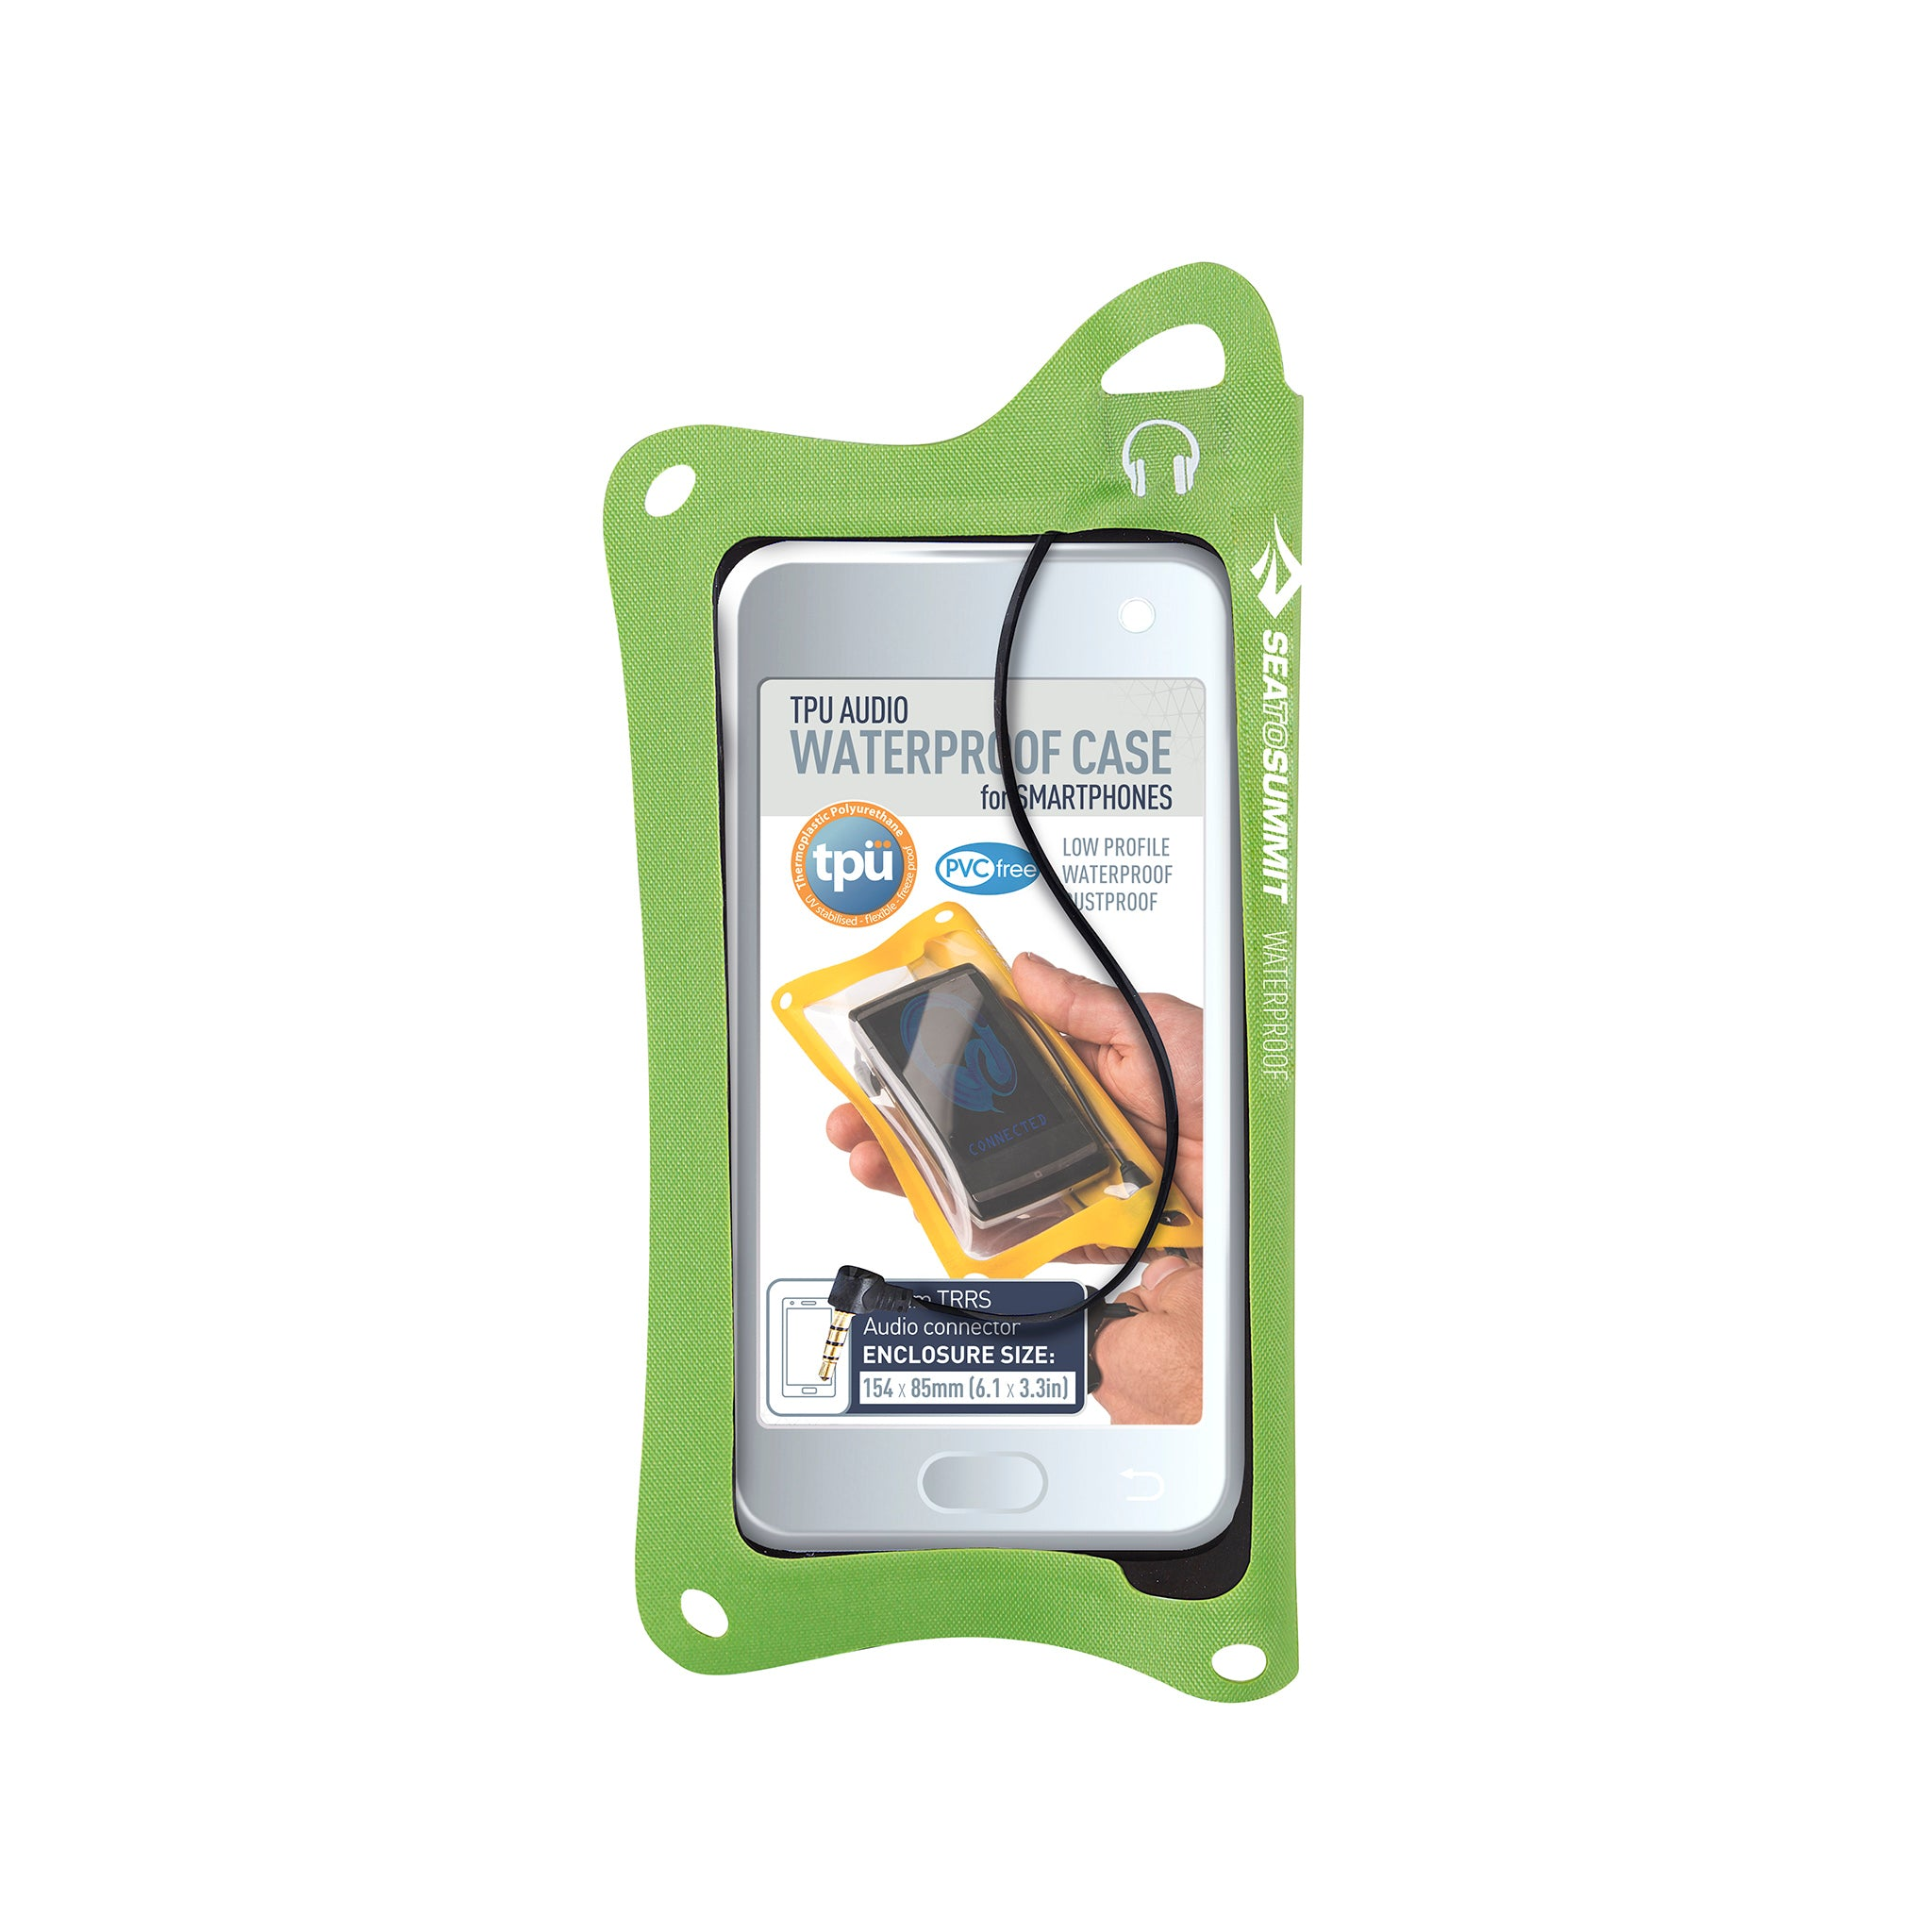 TPU Audio Waterproof Case for Phones _ iPhone _ green